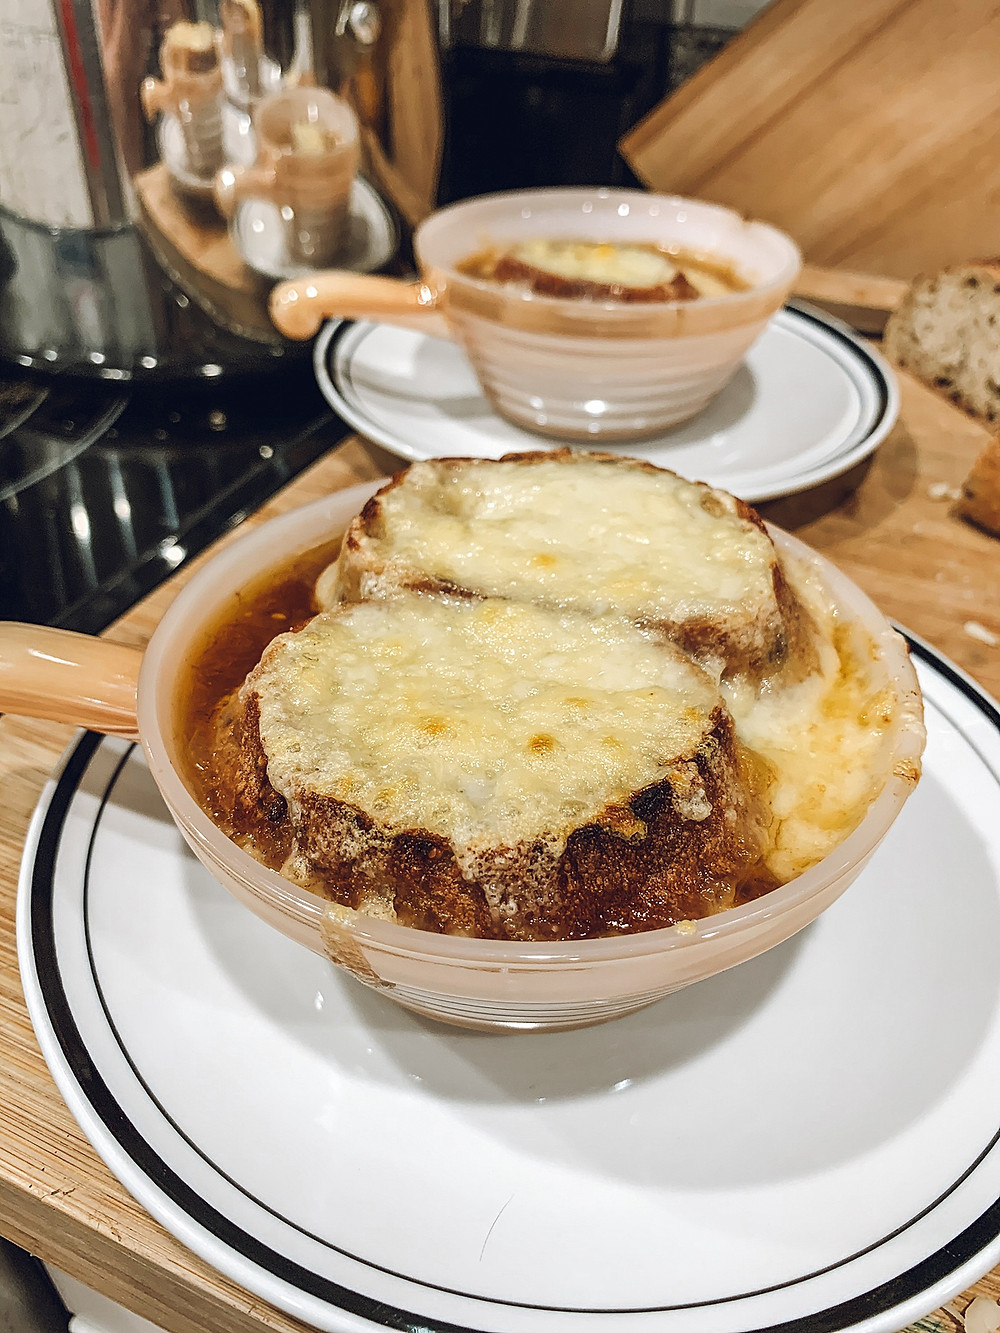 French onion soup recipe, Easy French onion soup recipe, Comfort food, Winter recipes, Holiday recipes, Gruyere, Soup recipe, Family recipe, Family friendly recipe, Family traditions, Uses for leftover beef